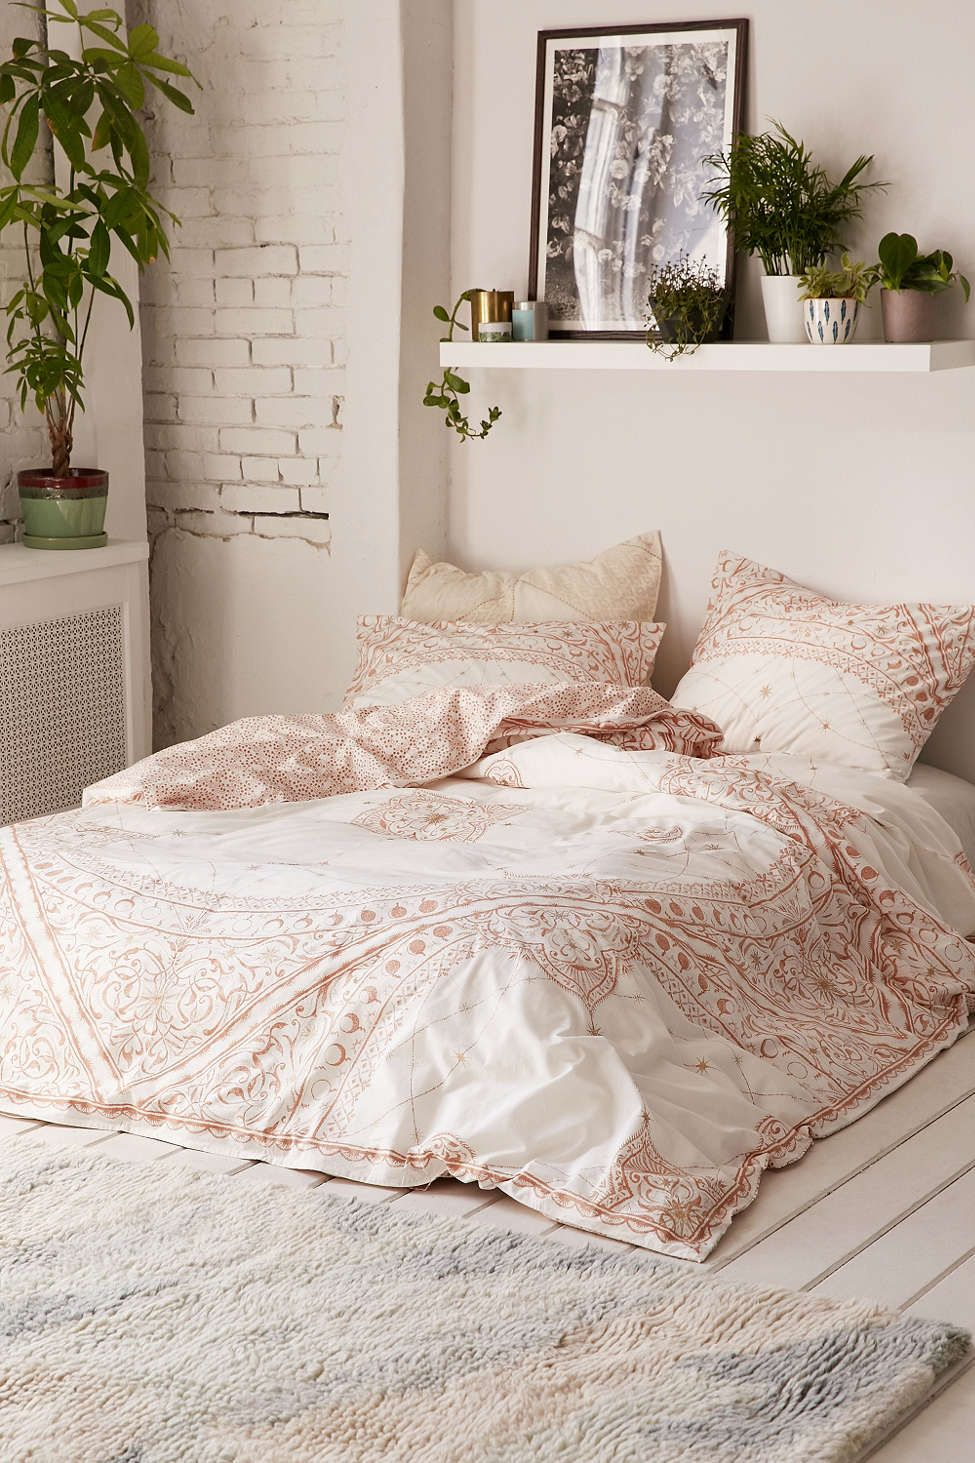 Solid Sheet Set Urban Outfitters Bedroom Bedroom Wall